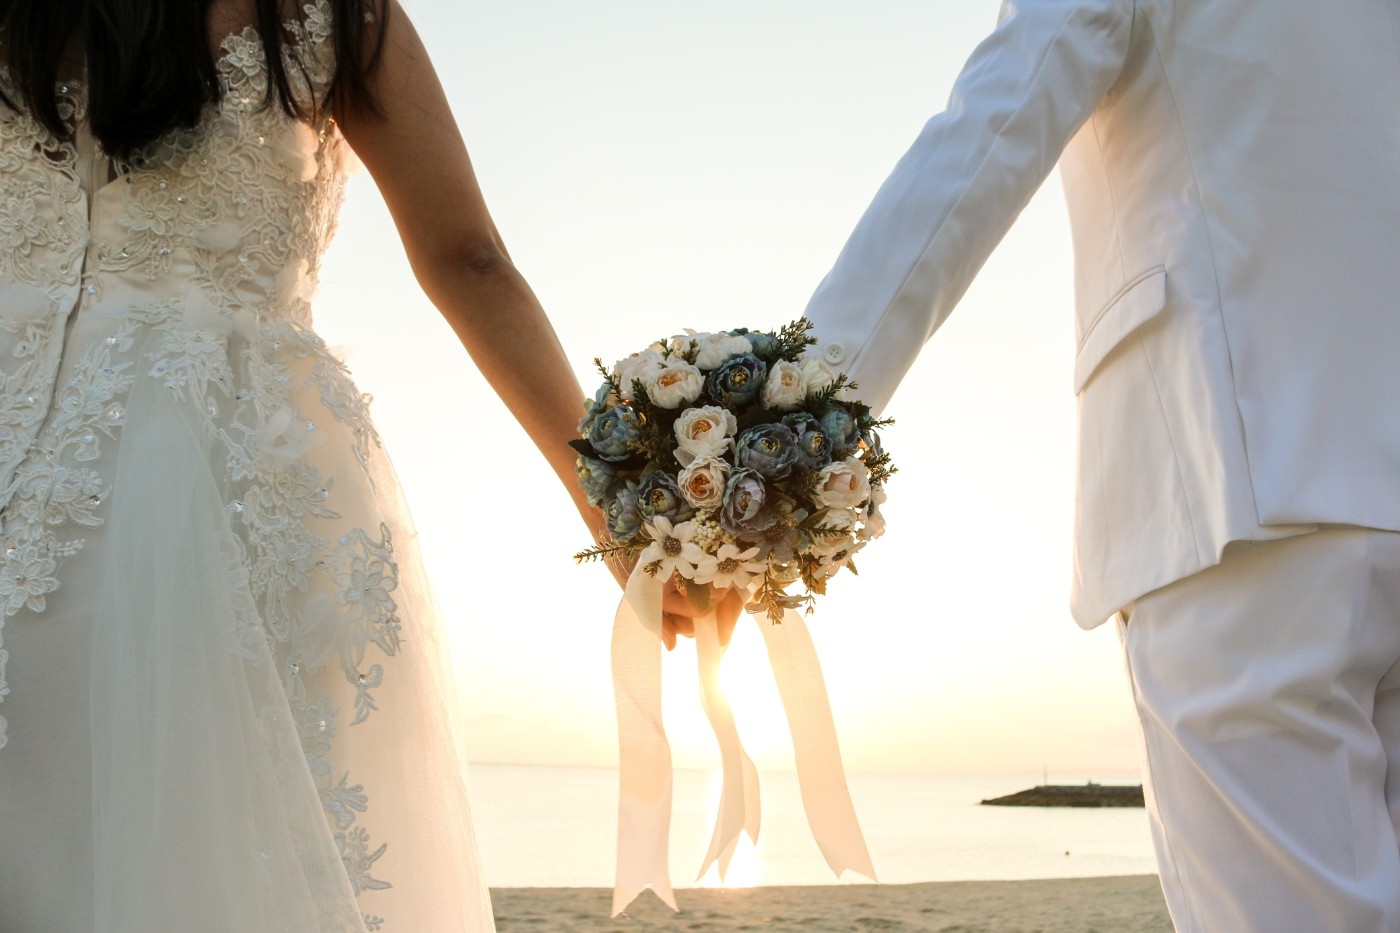 https://tickertapecdn.tdameritrade.com/assets/images/pages/md/Getting married? Manage your finances